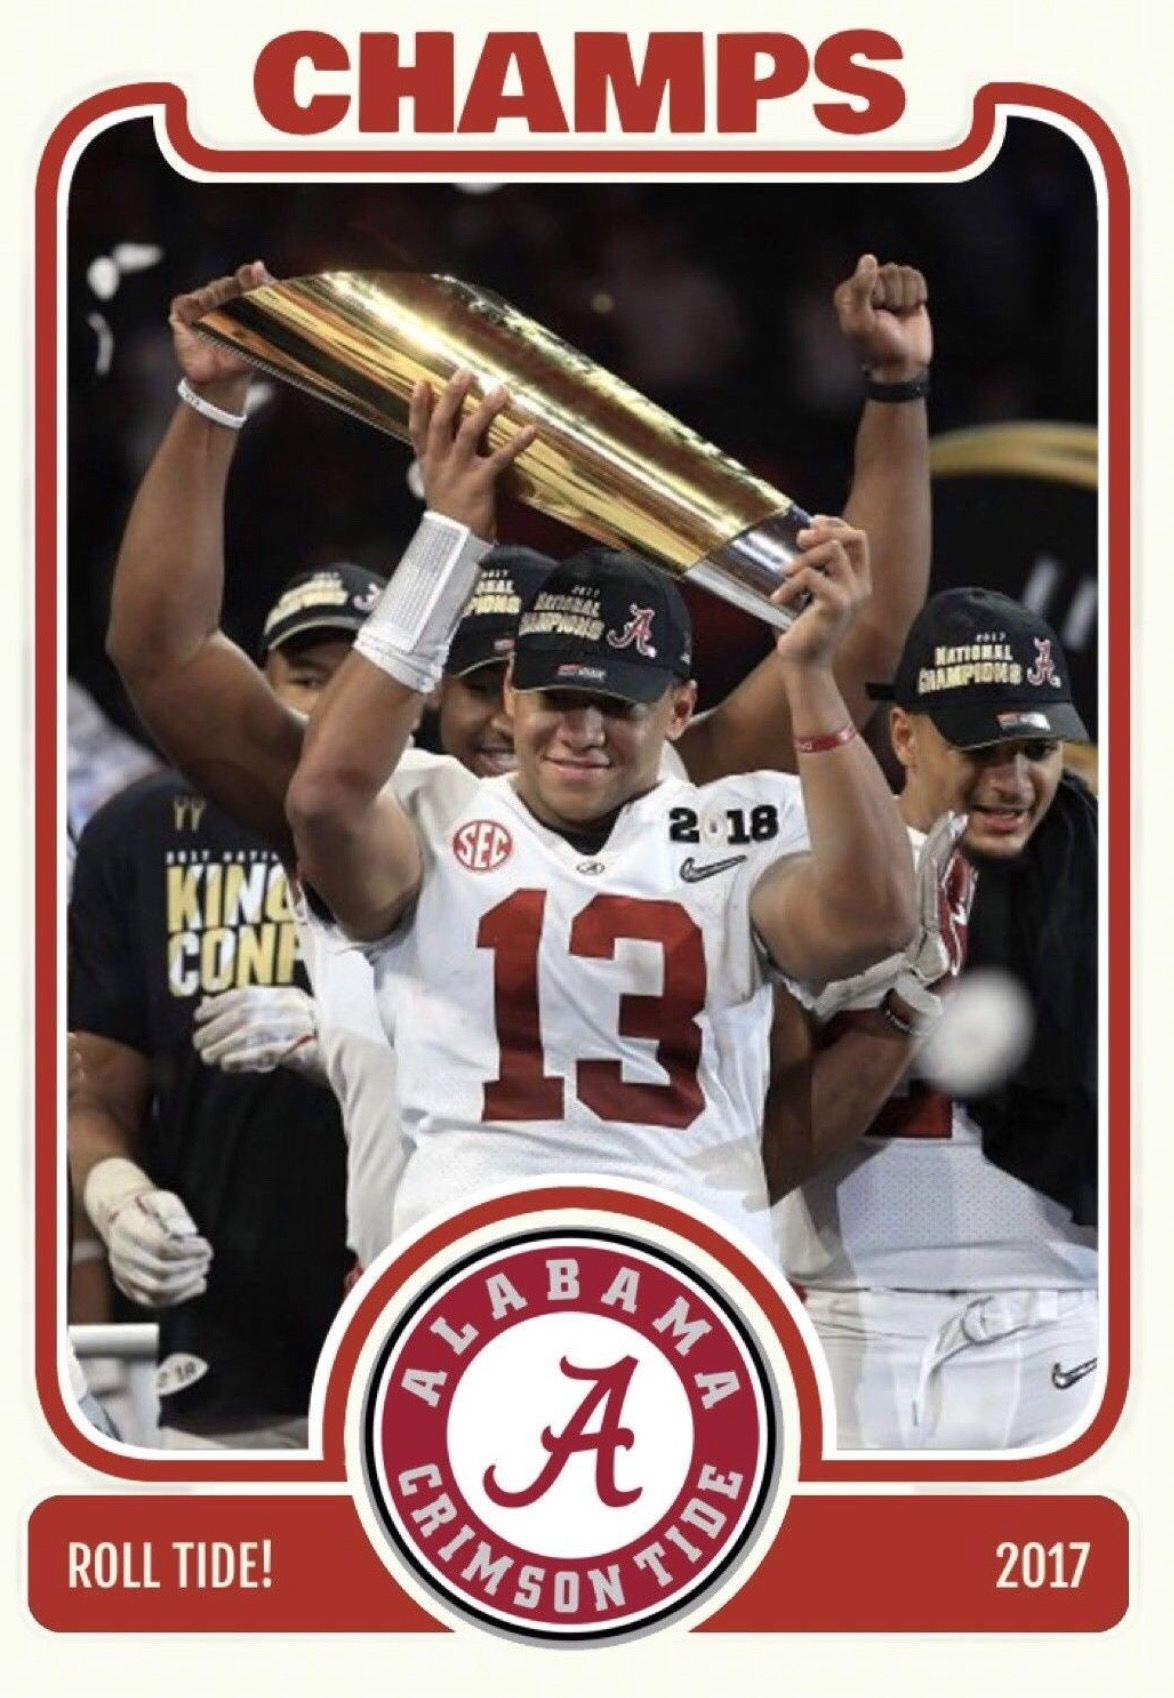 Tua Tagovailoa Alabama Rolltide Bama Builtbybama Rtr Crimsontide Rammerjammer Cfbpla Alabama Crimson Tide Football Alabama Crimson Tide Alabama Tide